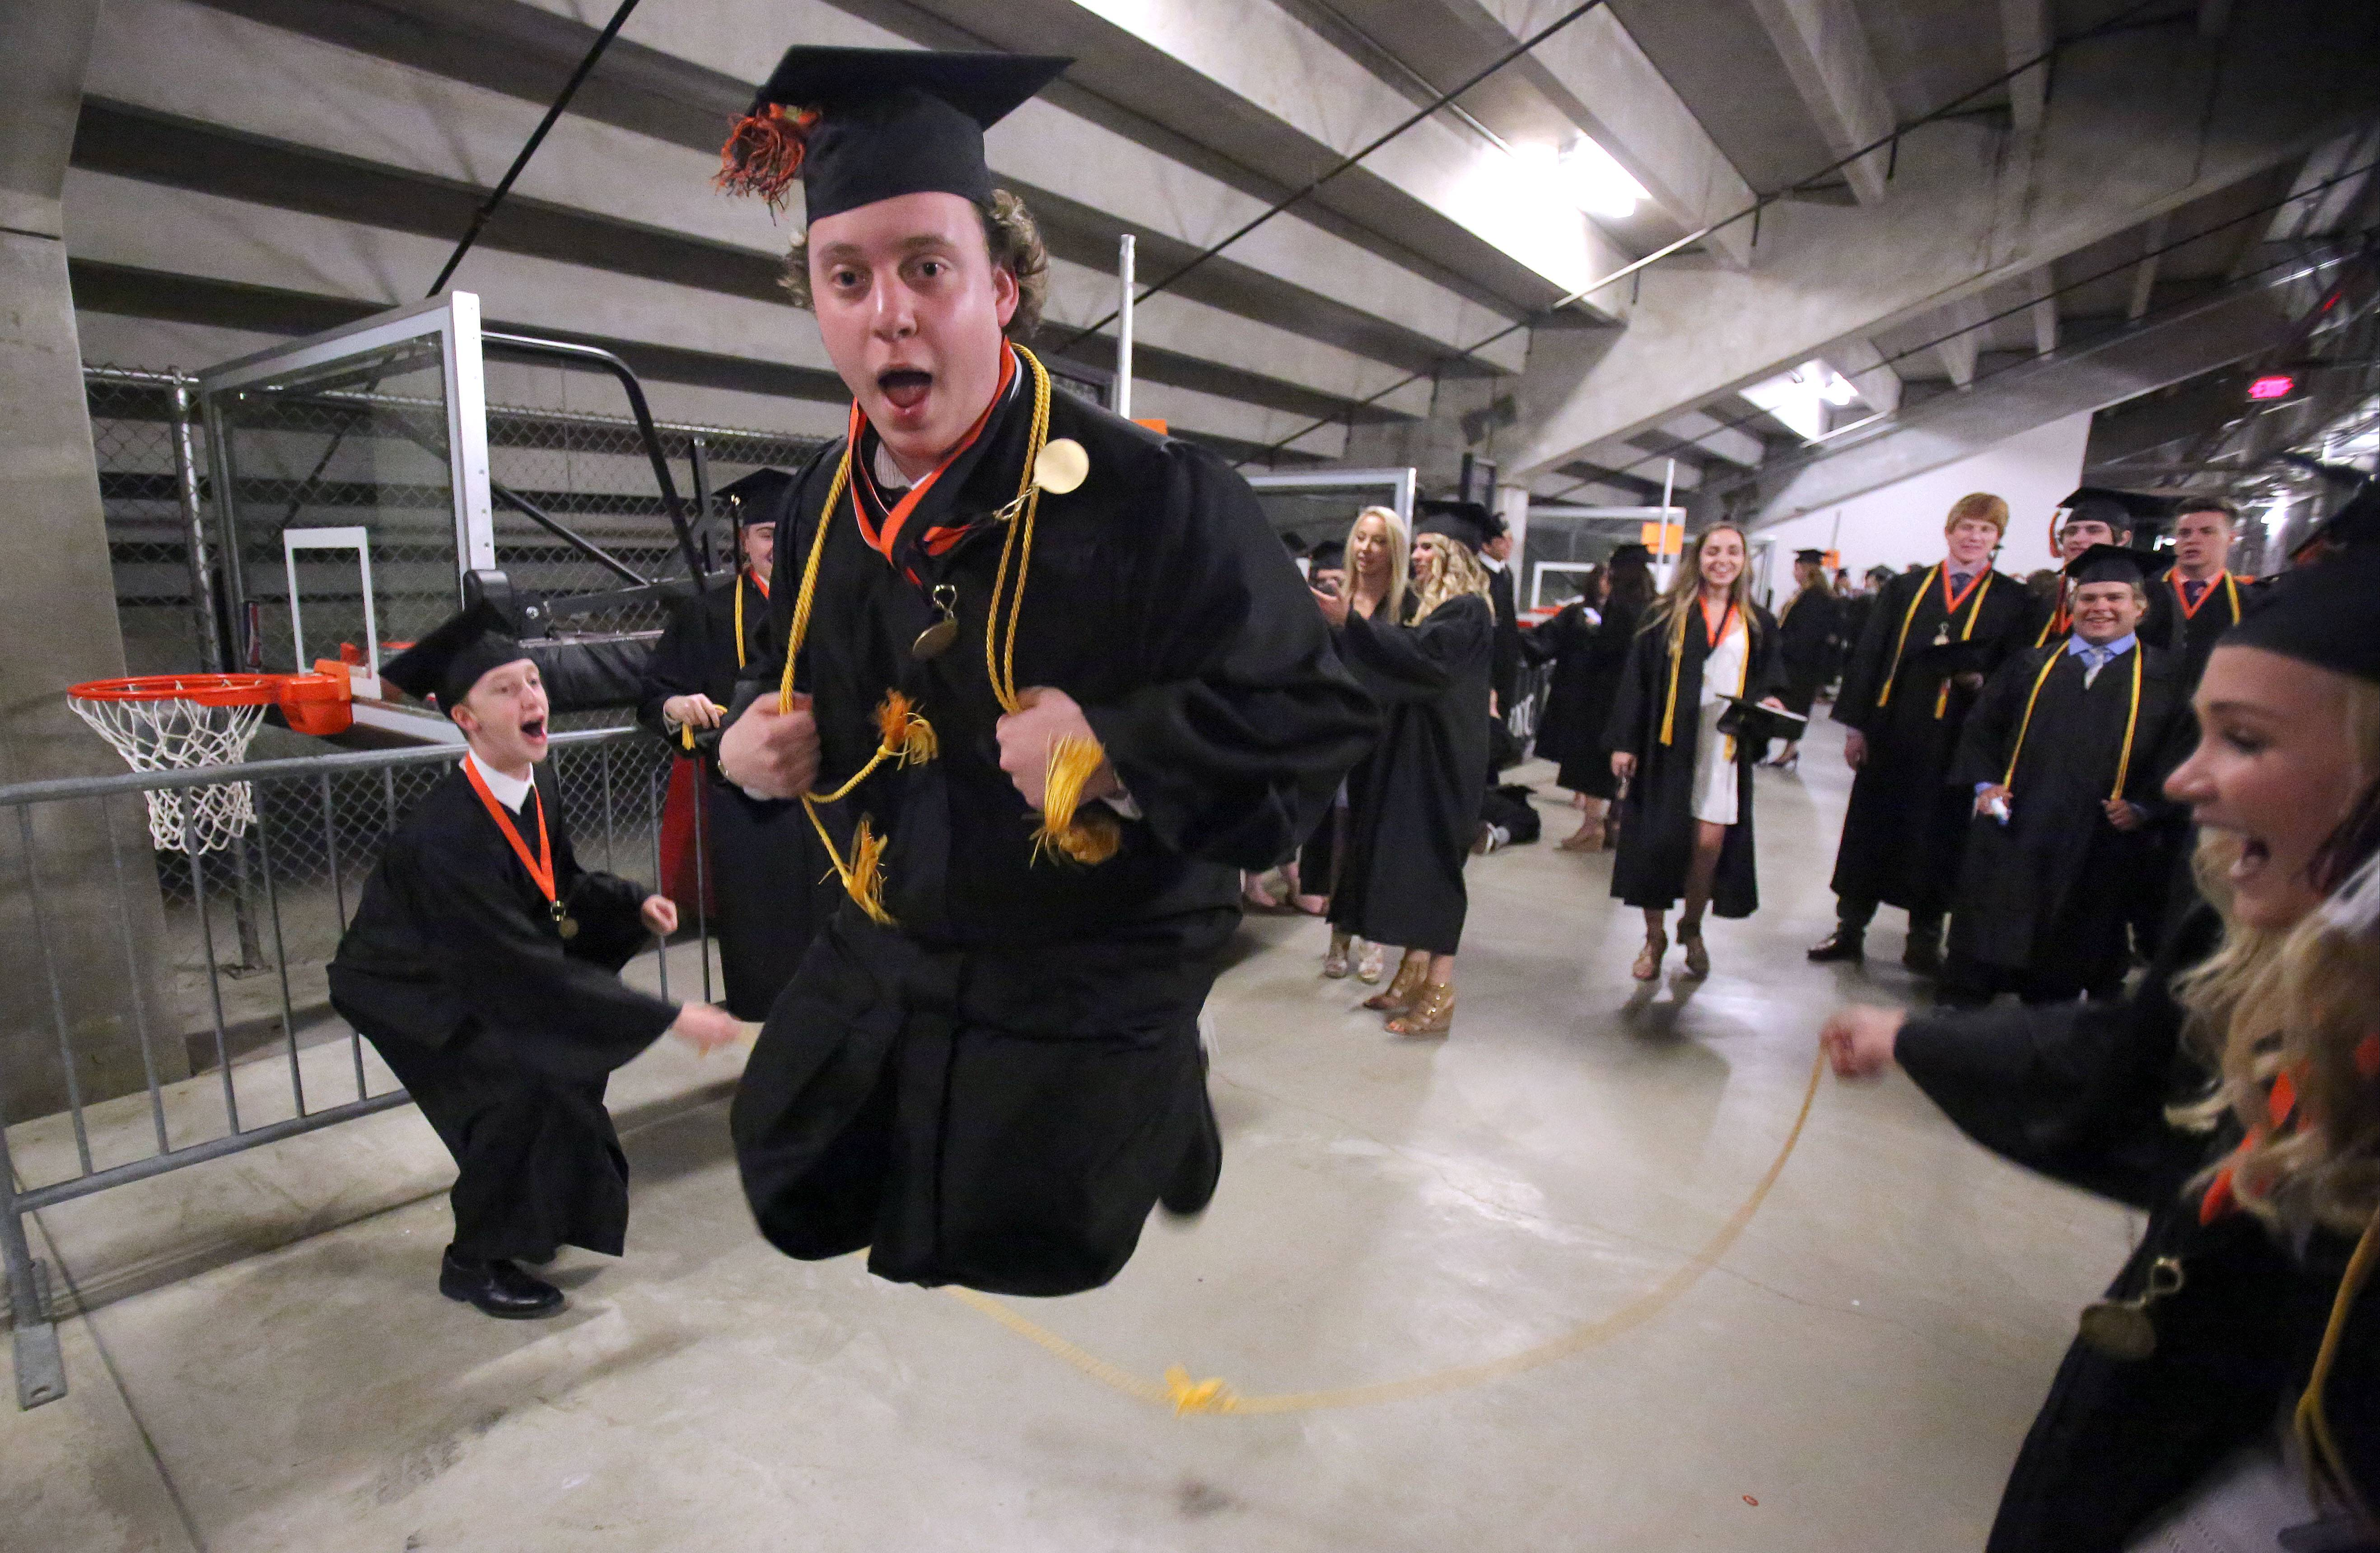 Ryan Bonate jumps rope before Libertyville High School's graduation ceremony Tuesday at the Sears Centre in Hoffman Estates.